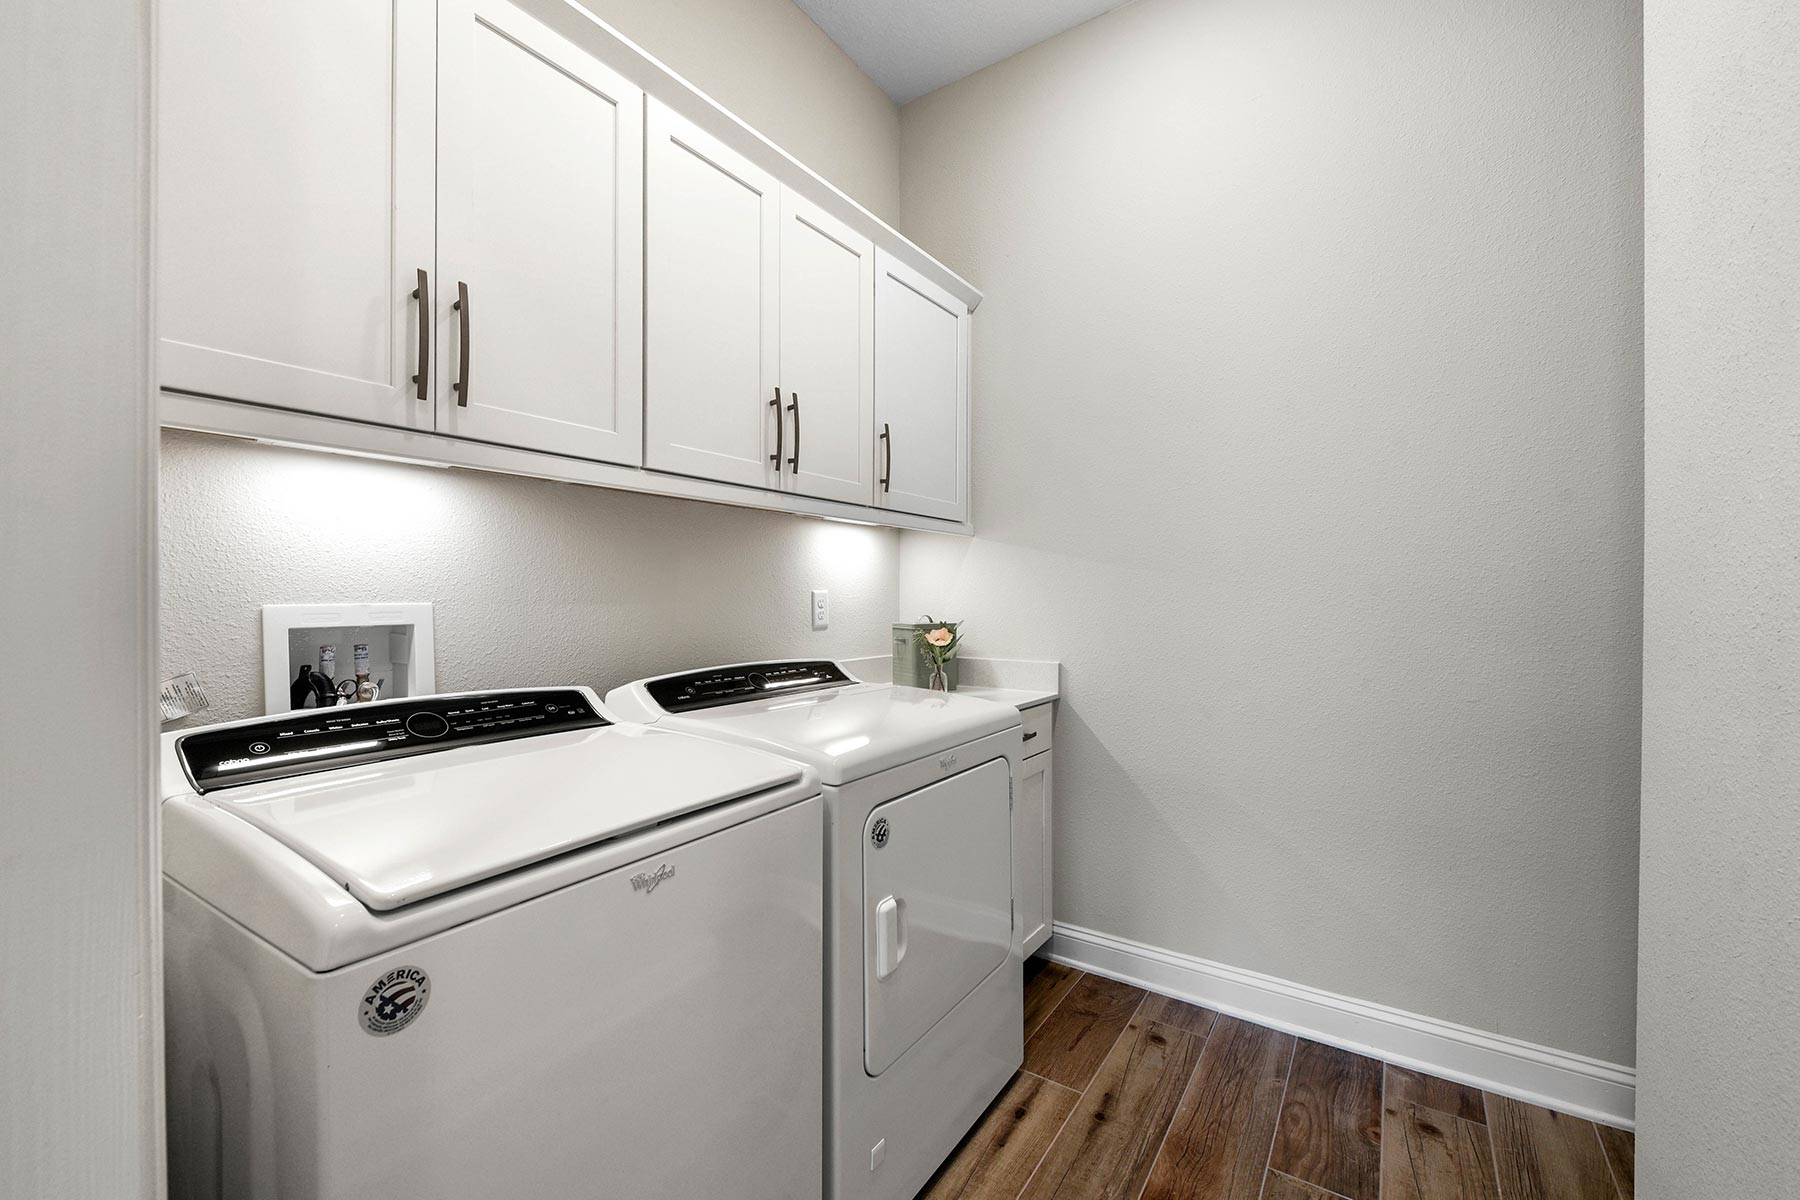 Court Plan Laundry at RiverTown - WaterSong in St. Johns Florida by Mattamy Homes